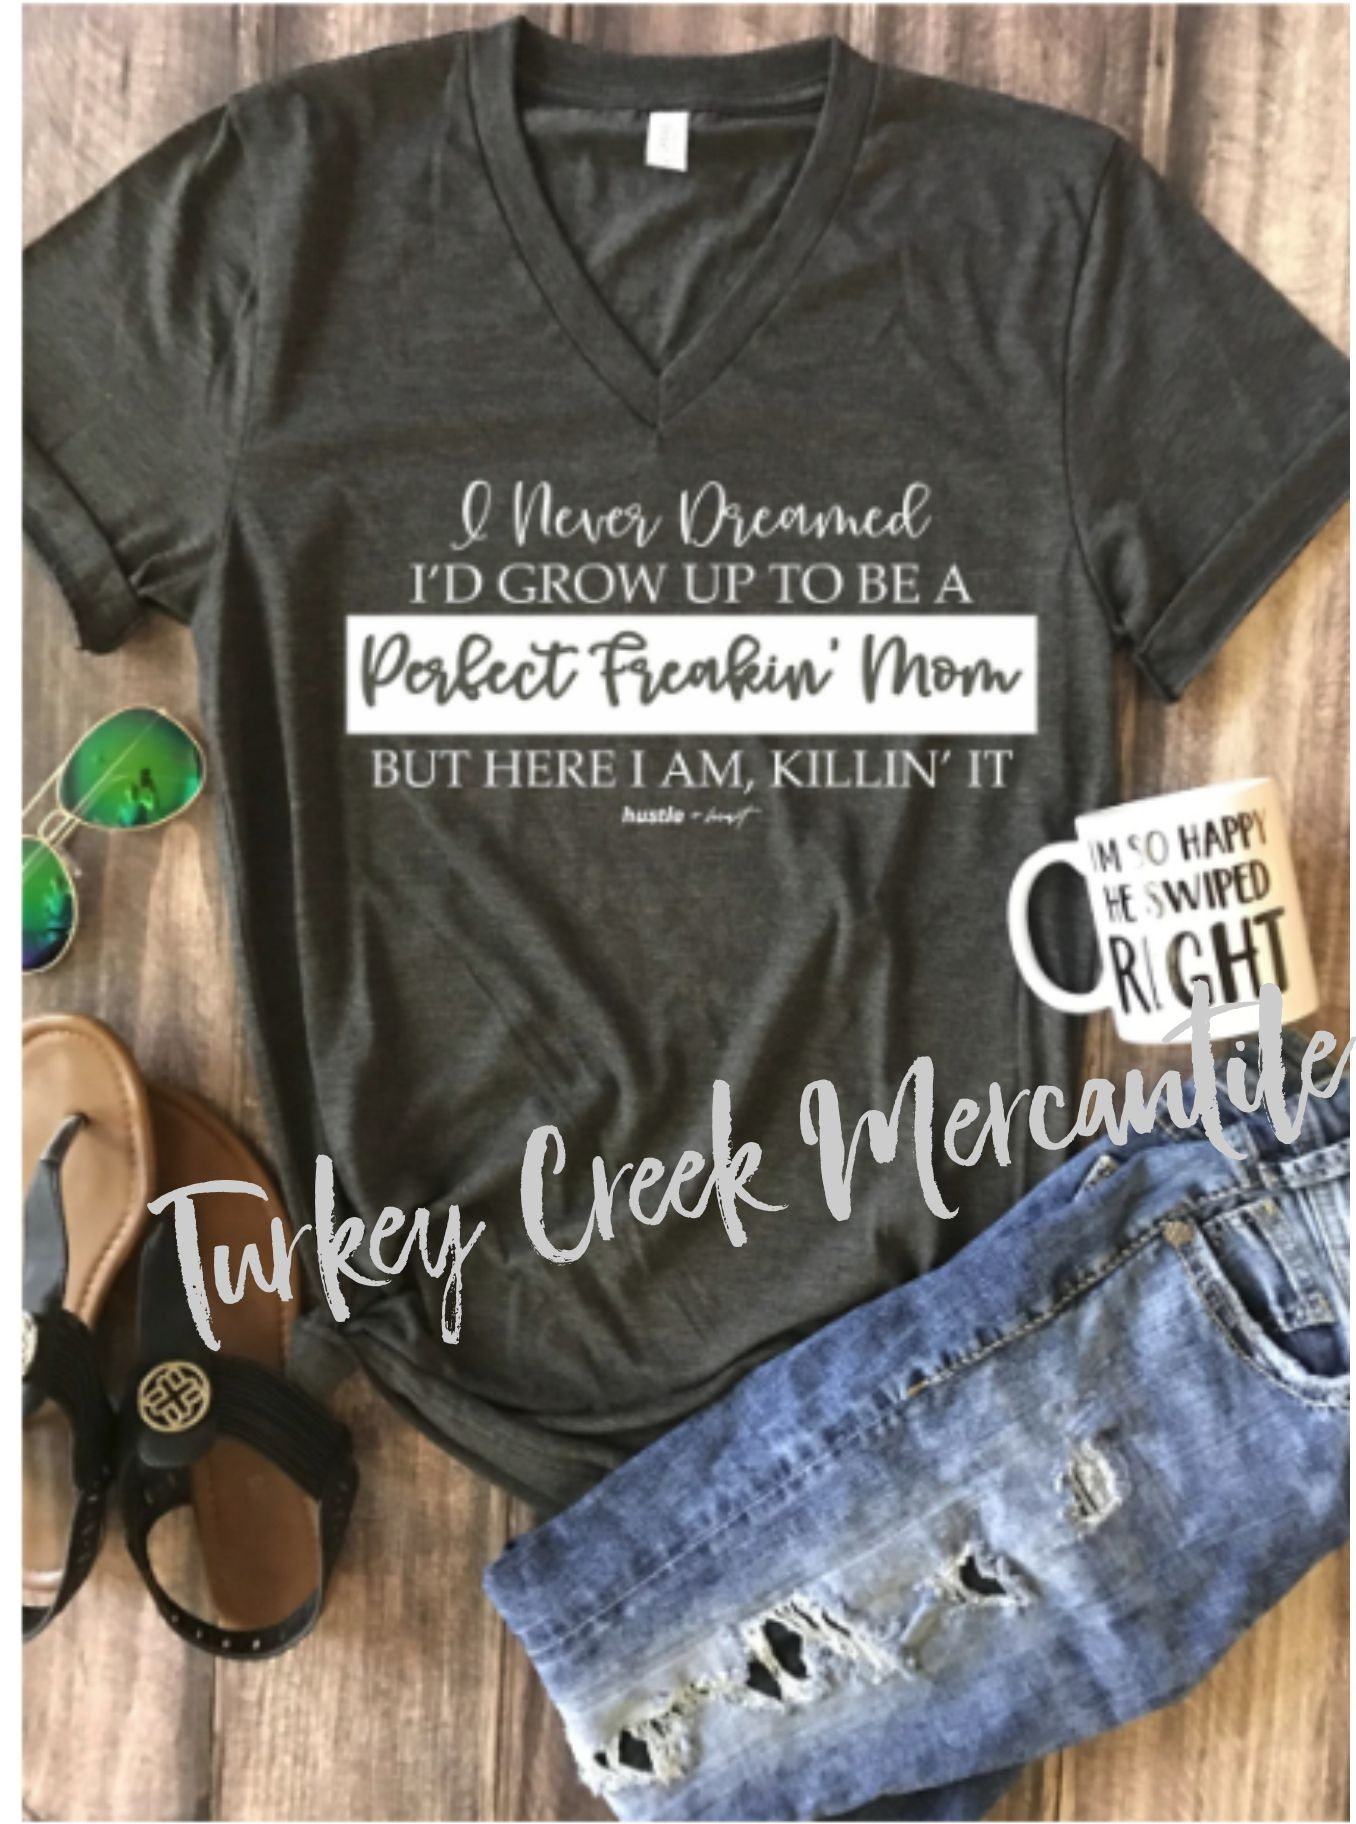 https://www.turkeycreekmercantile.com/Store/Product/mom-perfect-and-killing-it?page=1&sort=AlphaAscending&pageSize=12&parentCategory=all